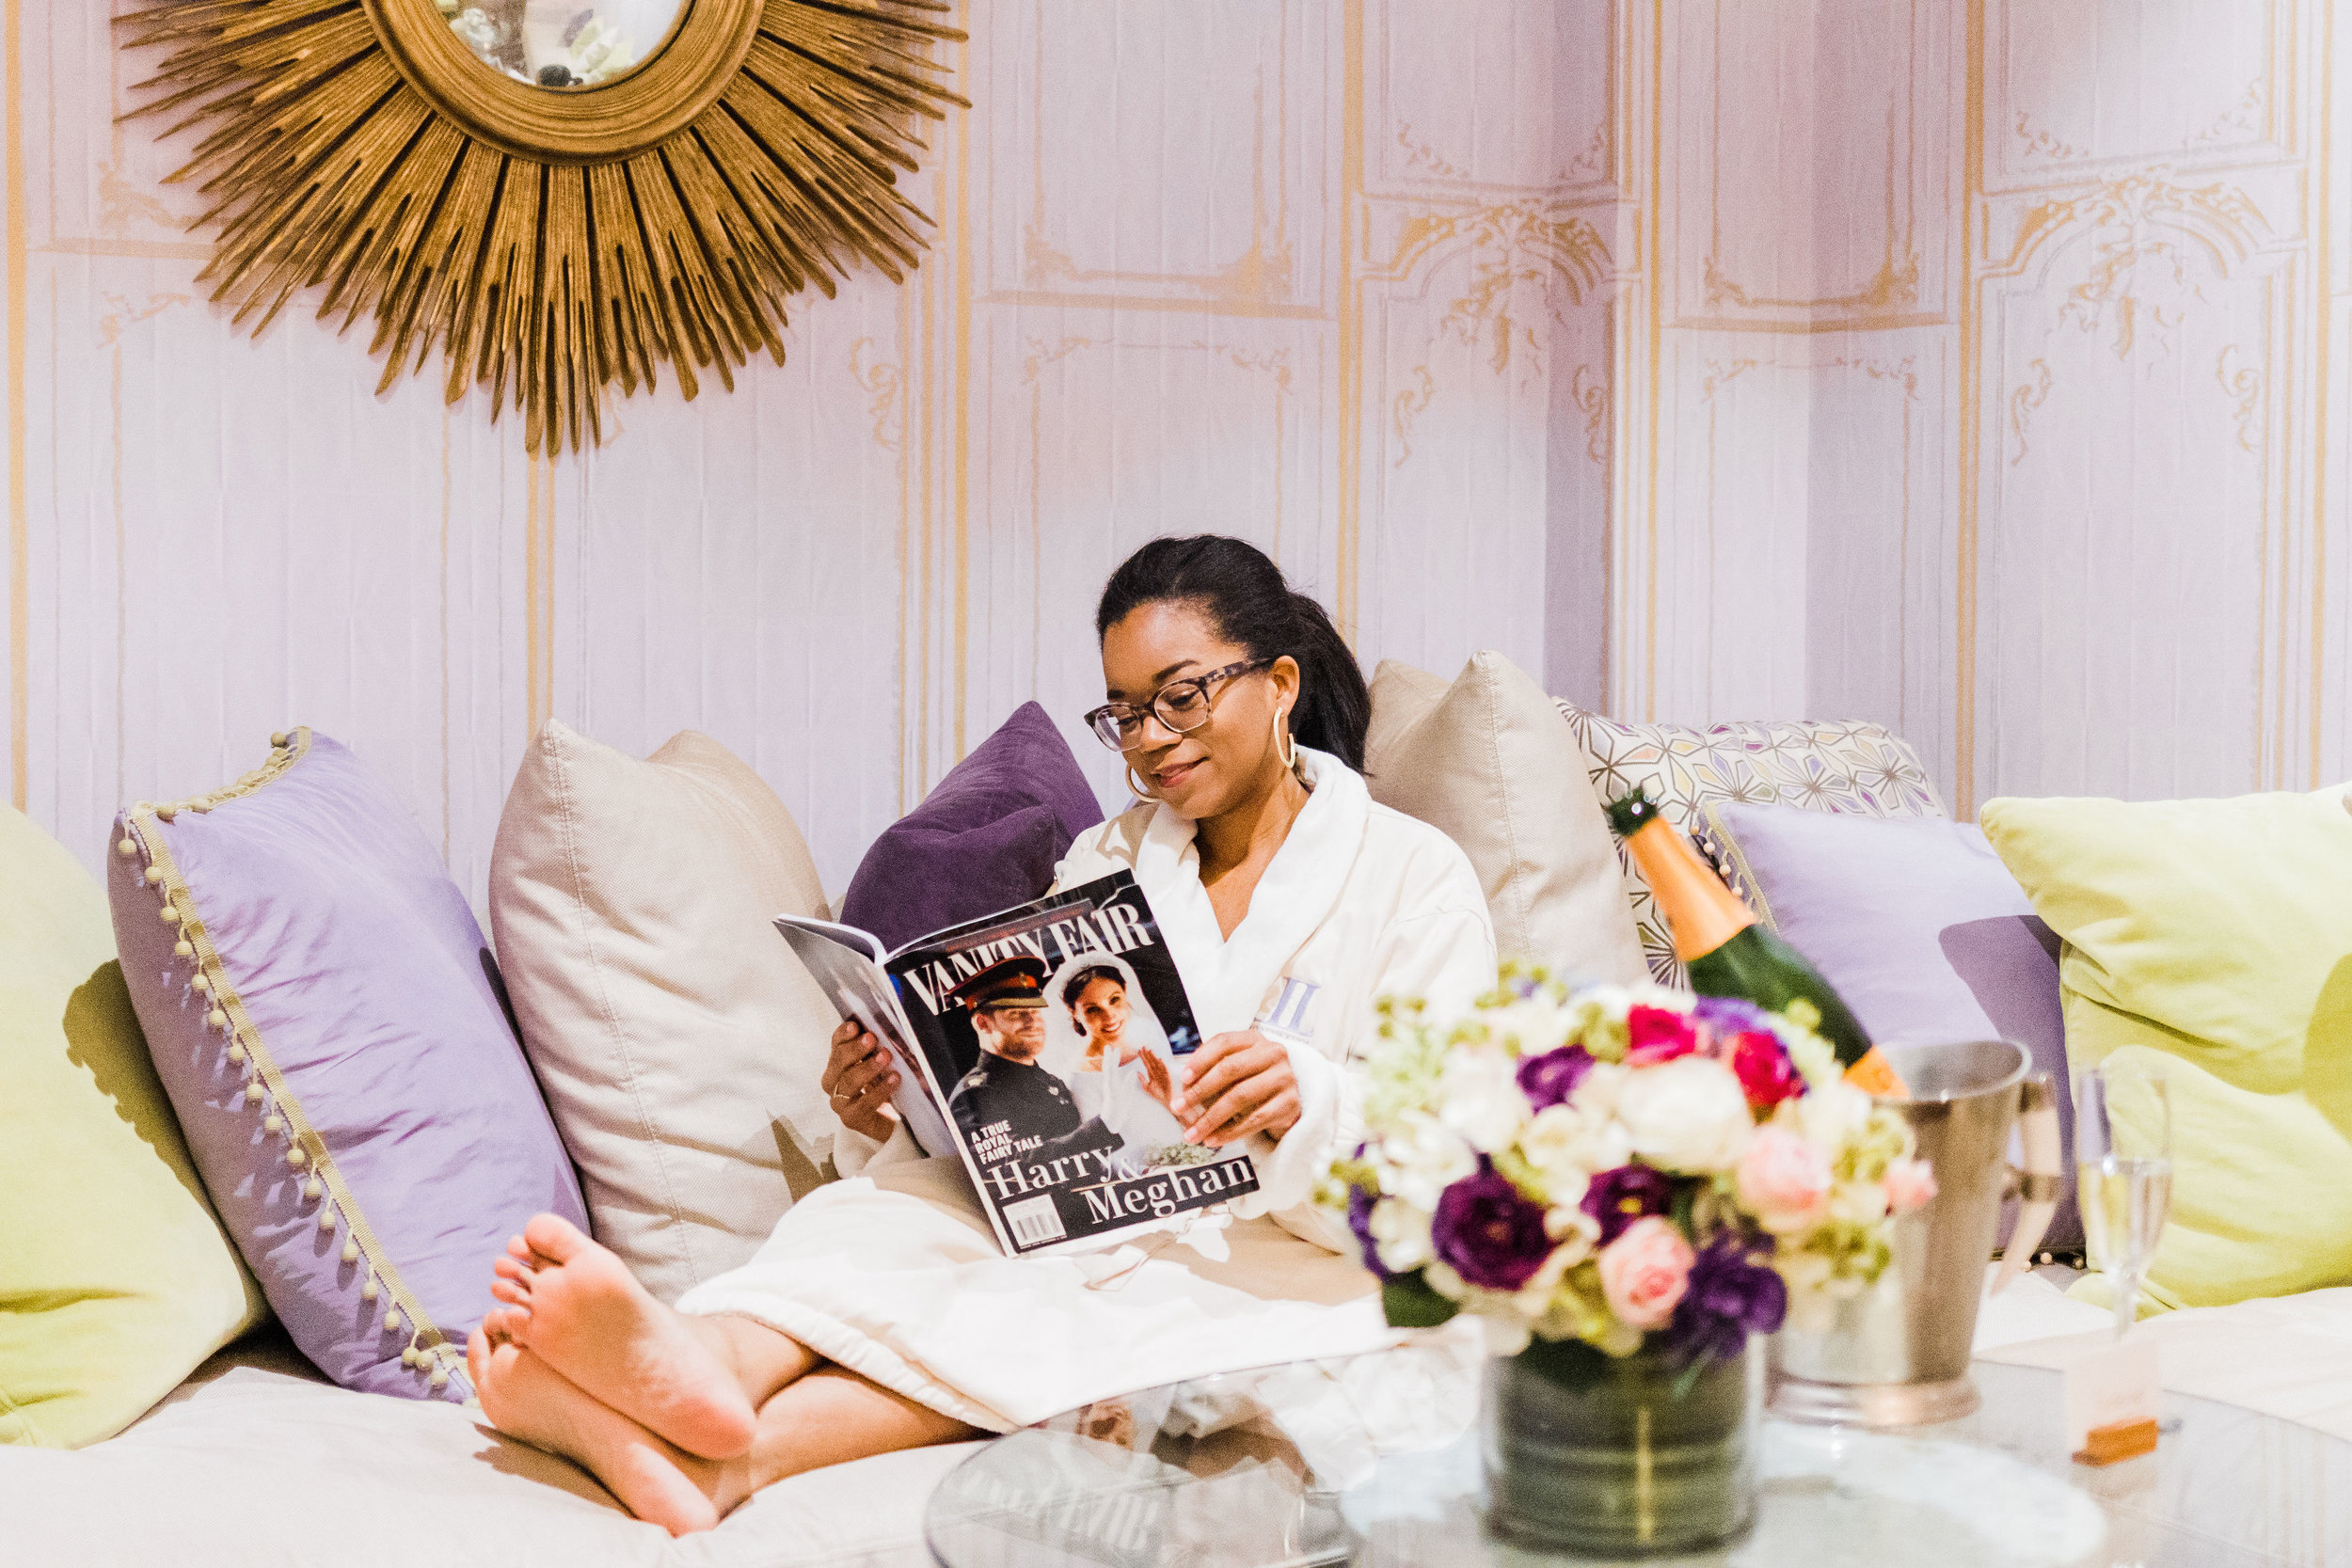 Images by Amber Robinson | Raleigh Wedding Photographer | Niki M